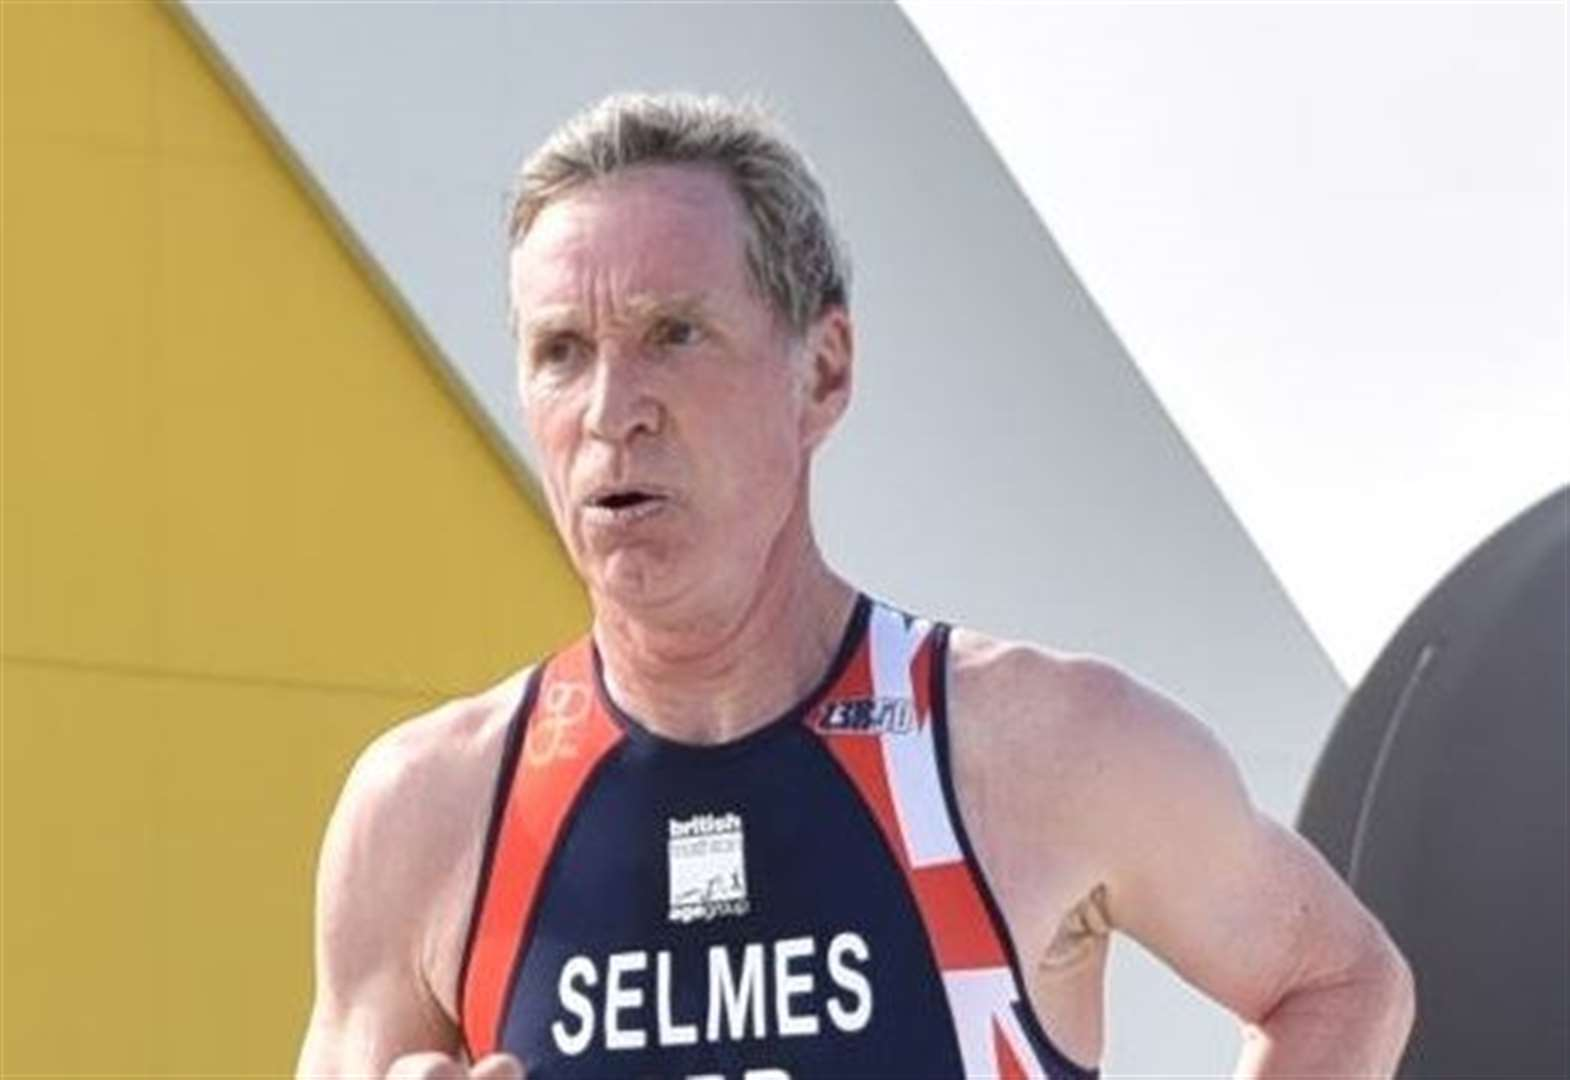 Silver lining as Selmes scoops first international medal